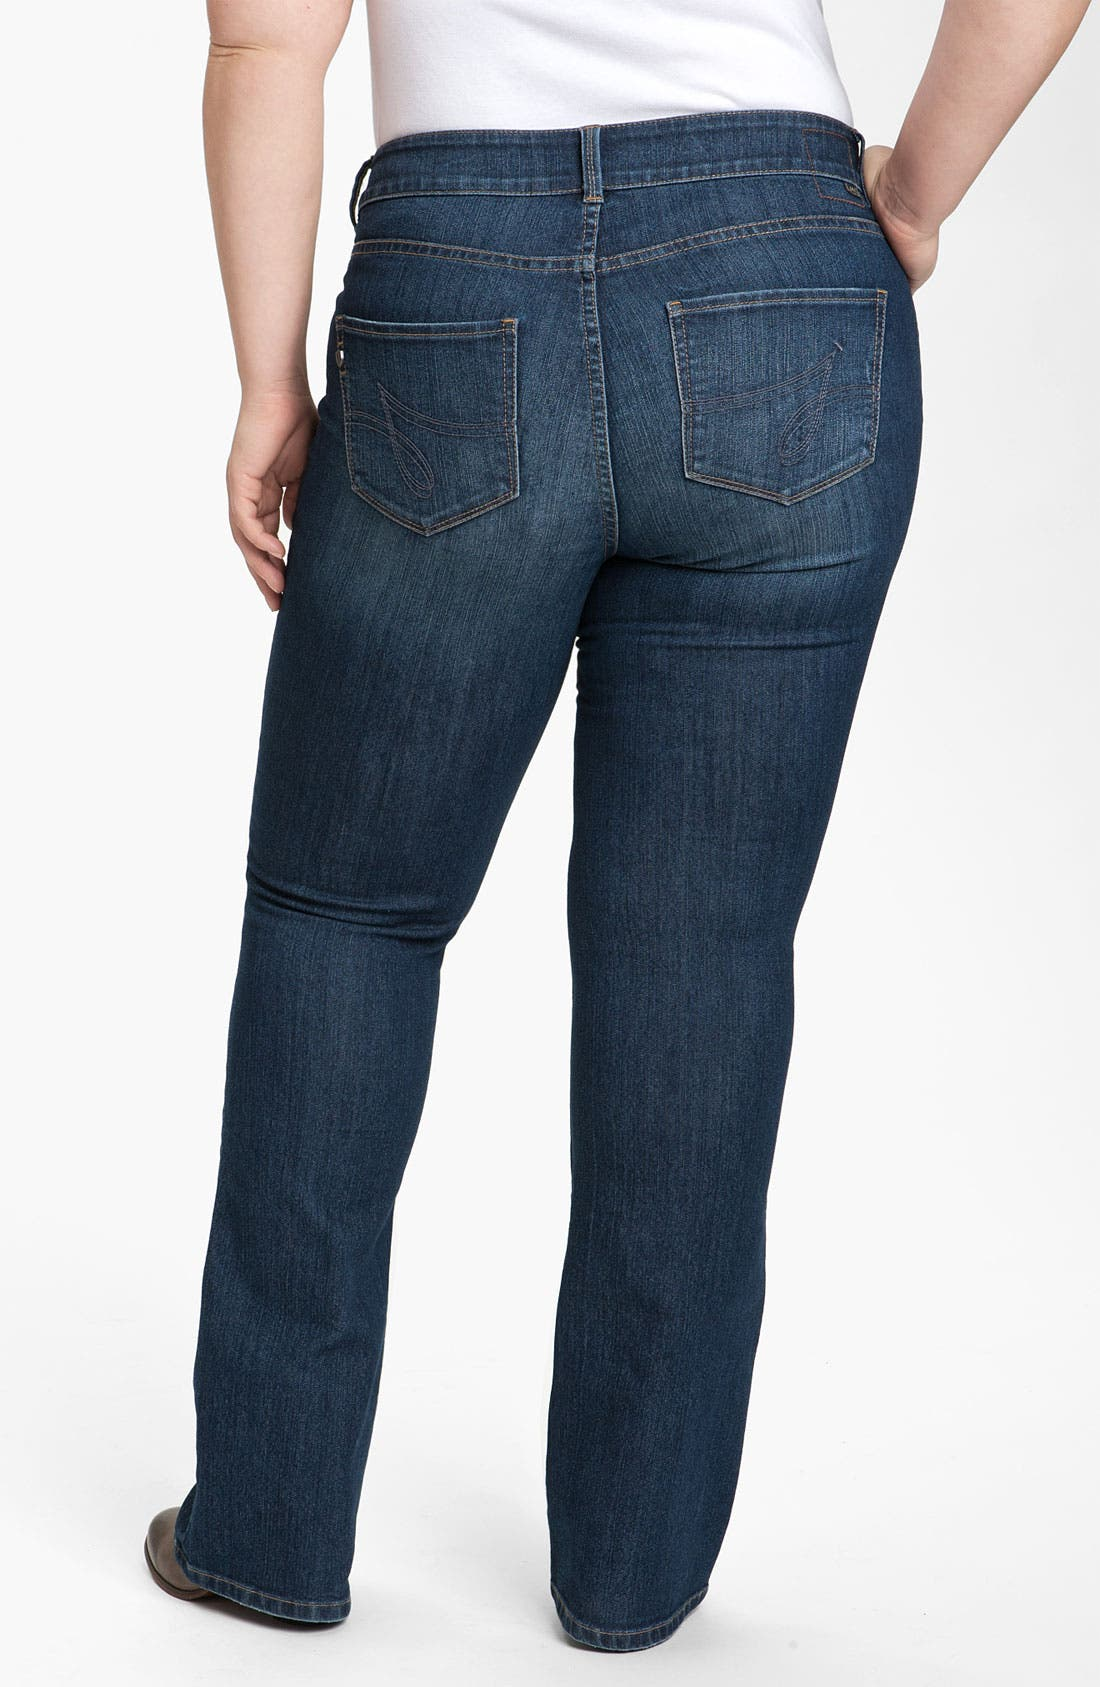 Alternate Image 2  - Jag Jeans 'Lucy' Bootcut Jeans (Plus Size) (Online Only)